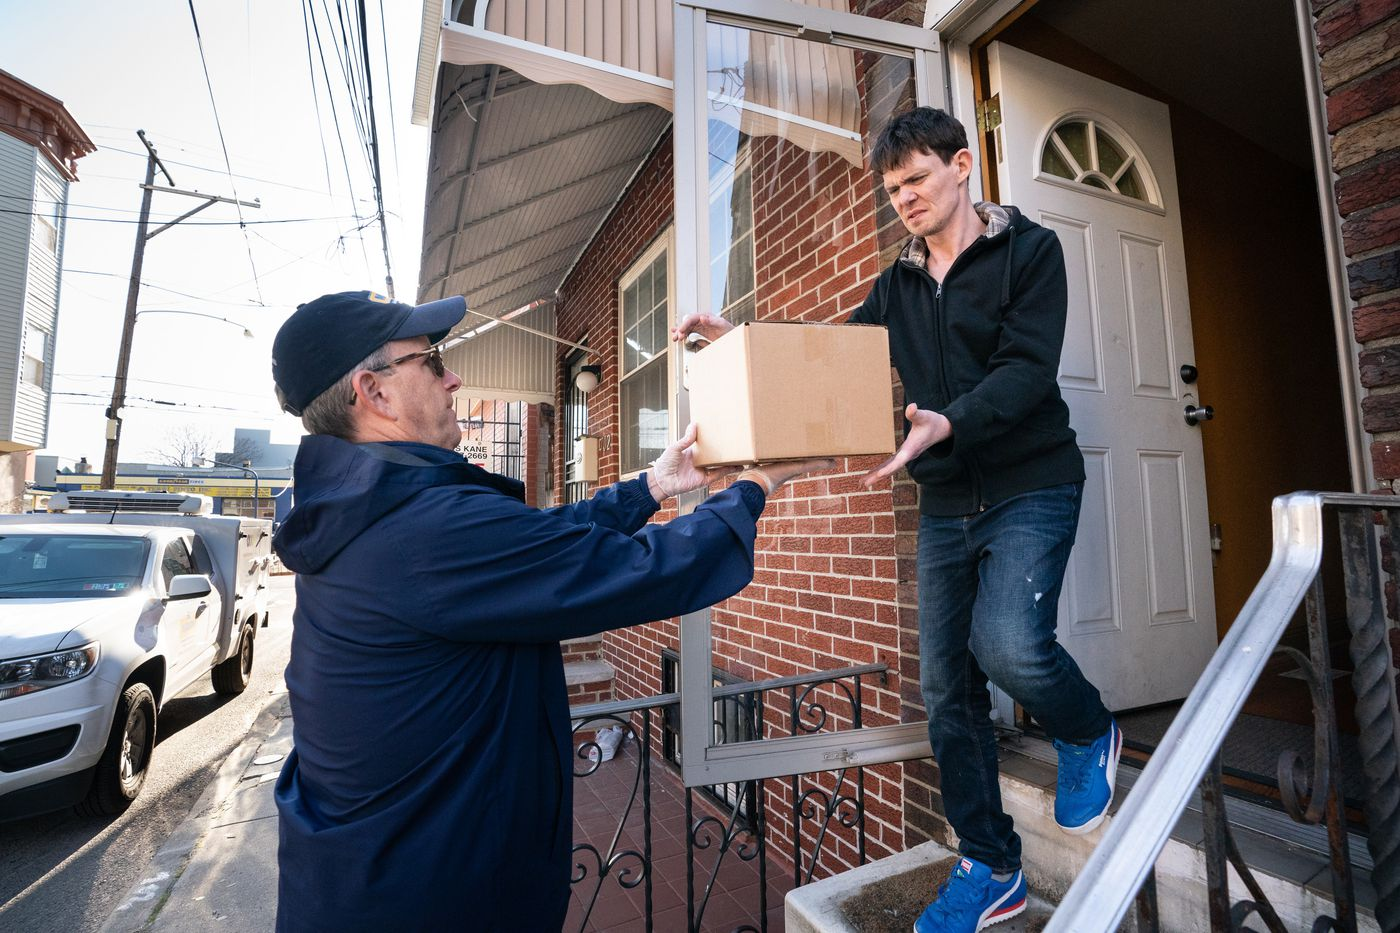 Robert Saxon, left, Director of External Affairs, makes an emergency food delivery, to client Michael Olsen, right, in Philadelphia, March 16, 2020. Saxon would normally be working in the office, but he is out making deliveries today, as the coronavirus flares, agencies like Manna that deliver food to the home-bound are facing difficulties, including the loss of volunteer drivers.